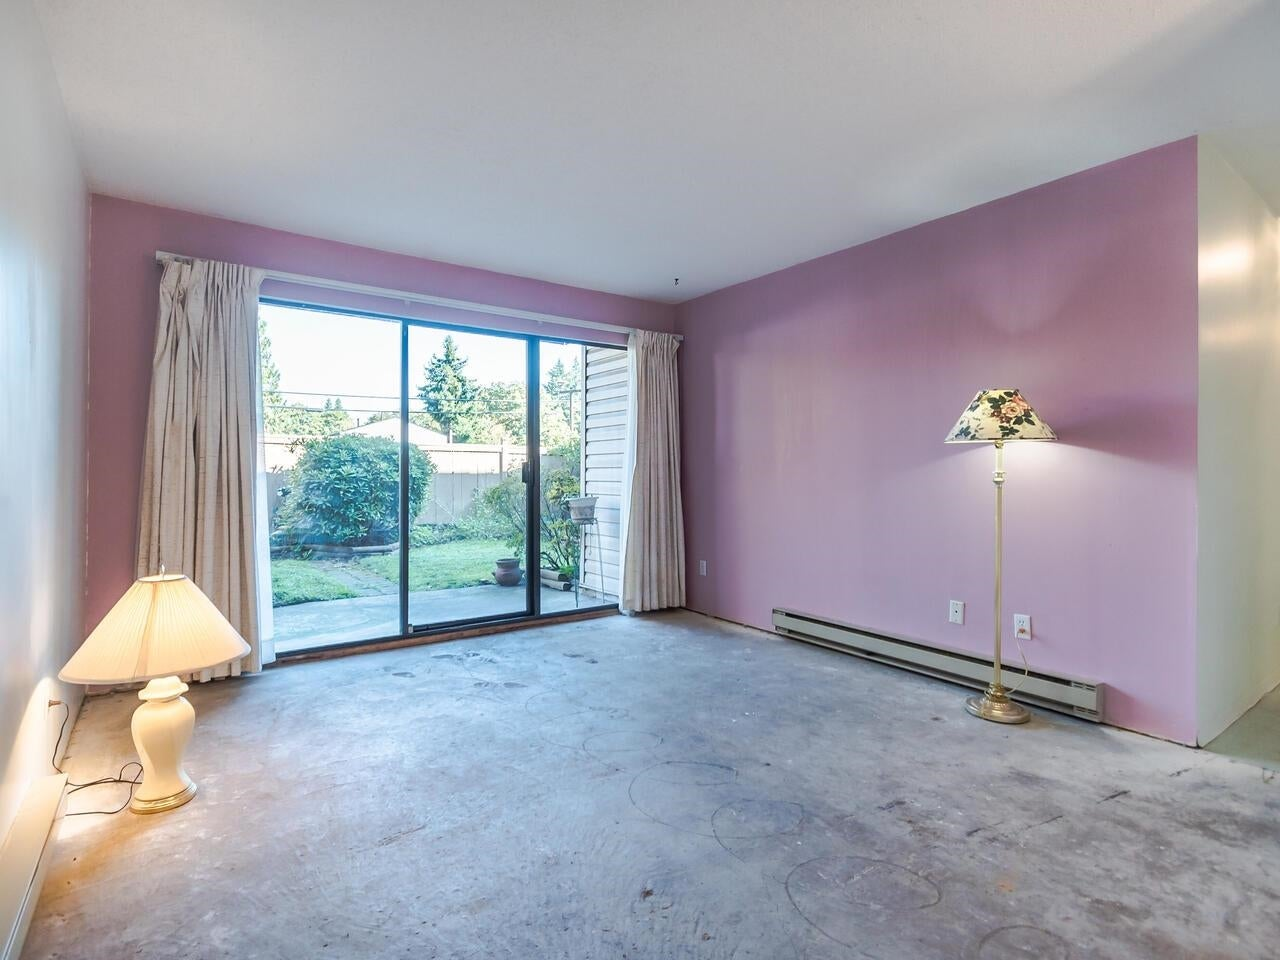 107 5191 203 STREET - Langley City Apartment/Condo for sale, 2 Bedrooms (R2625712) - #3